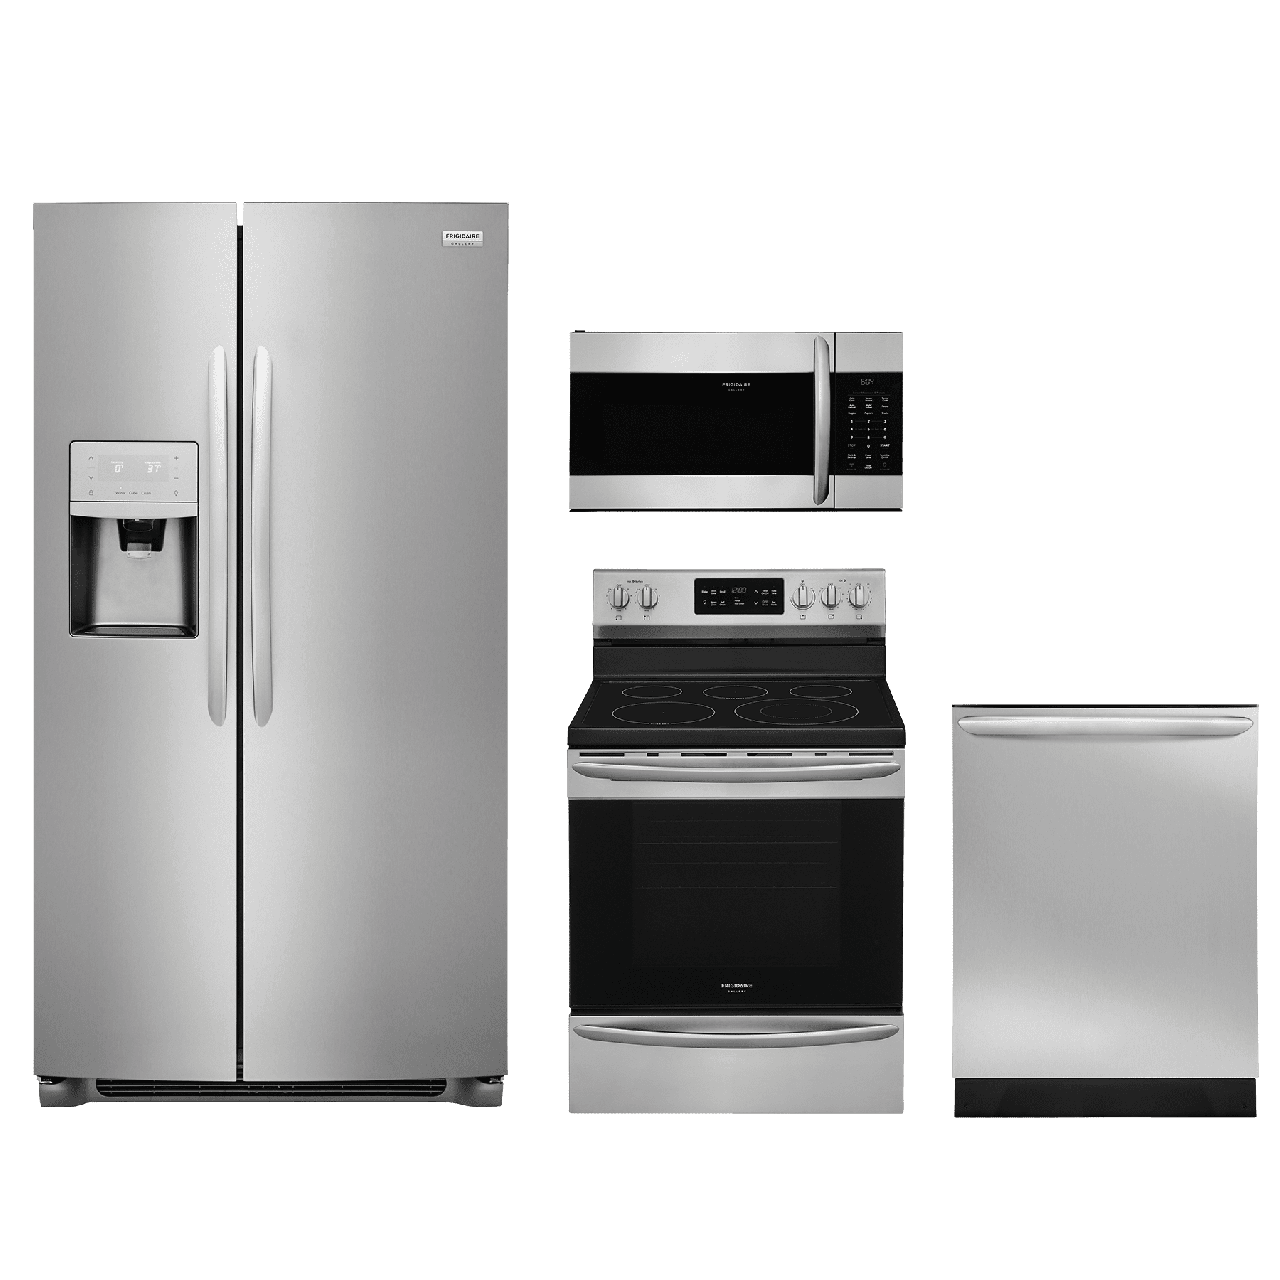 Merveilleux Frigidaire Gallery® 4 Piece Kitchen Package Stainless  Steel FRGAKITFGEF3036TF